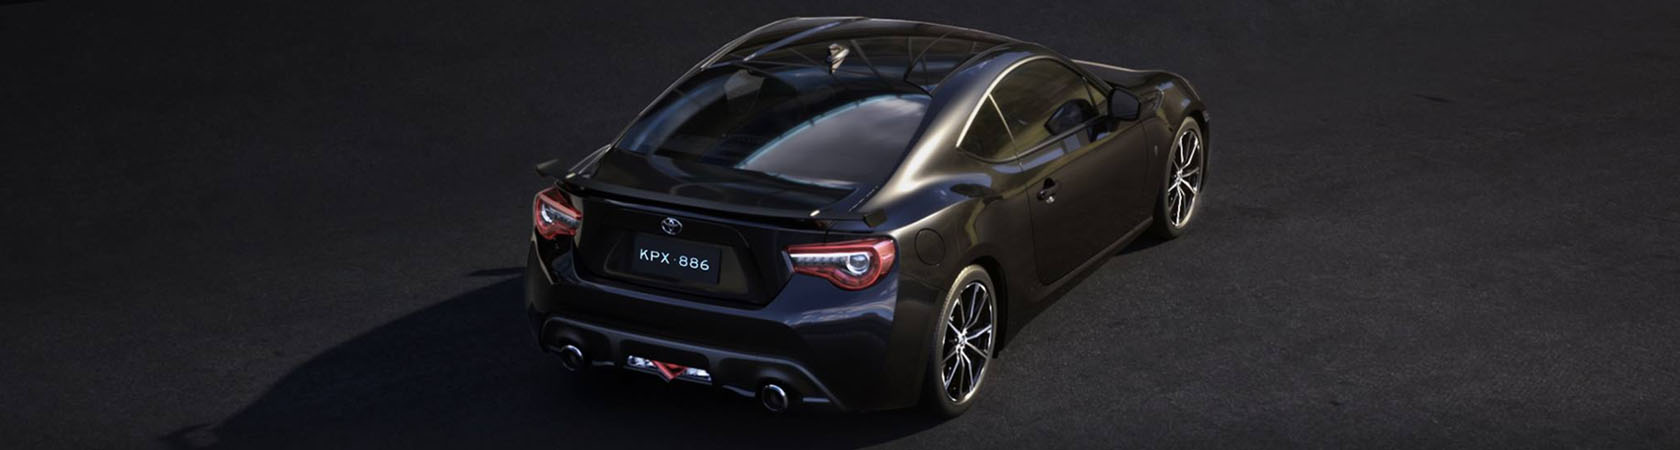 Maryborough Toyota 86